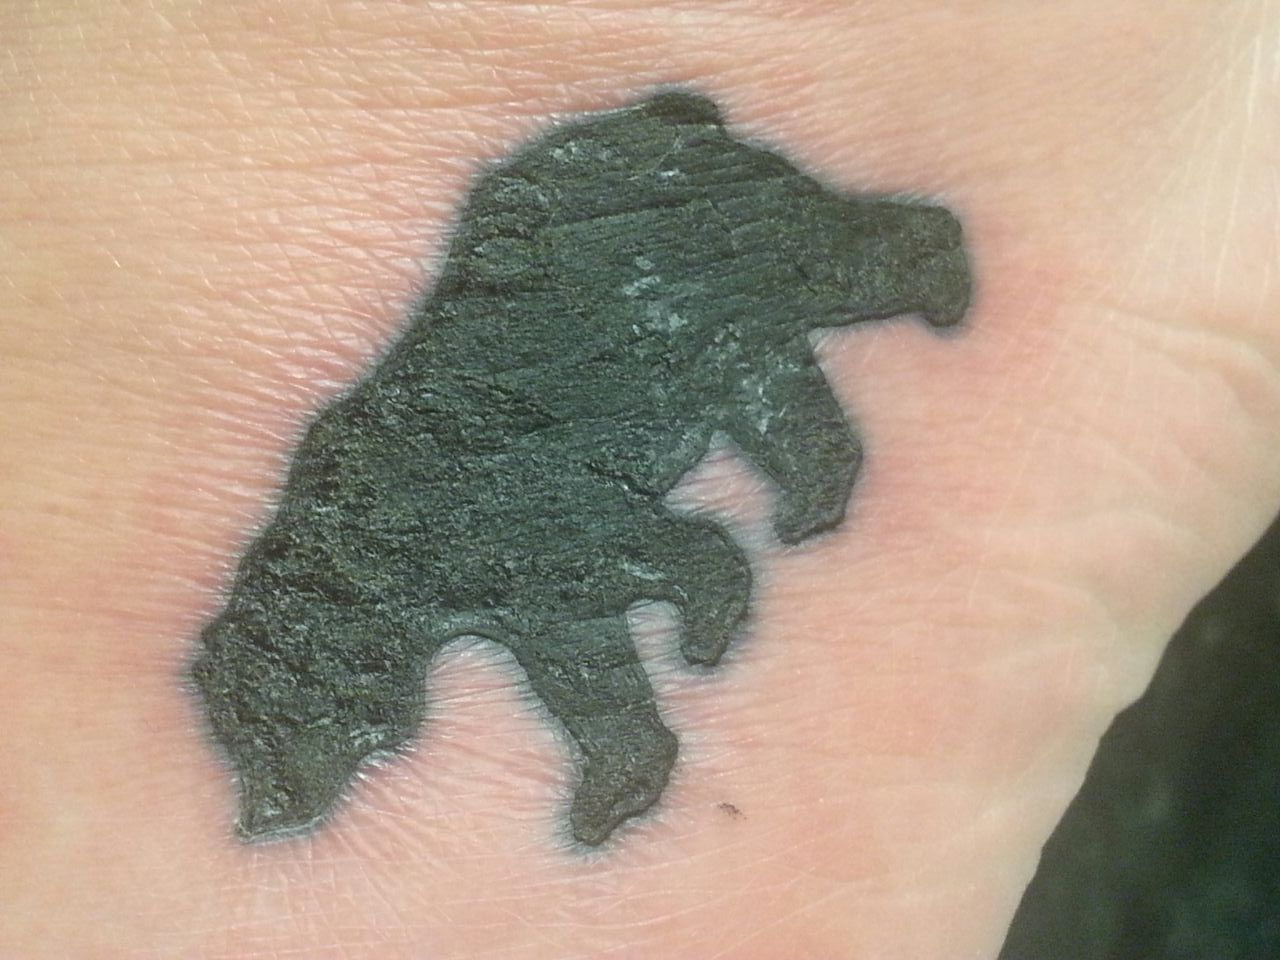 How To Care For A New Tattoo Pugs And Dinosaurs Pugs And